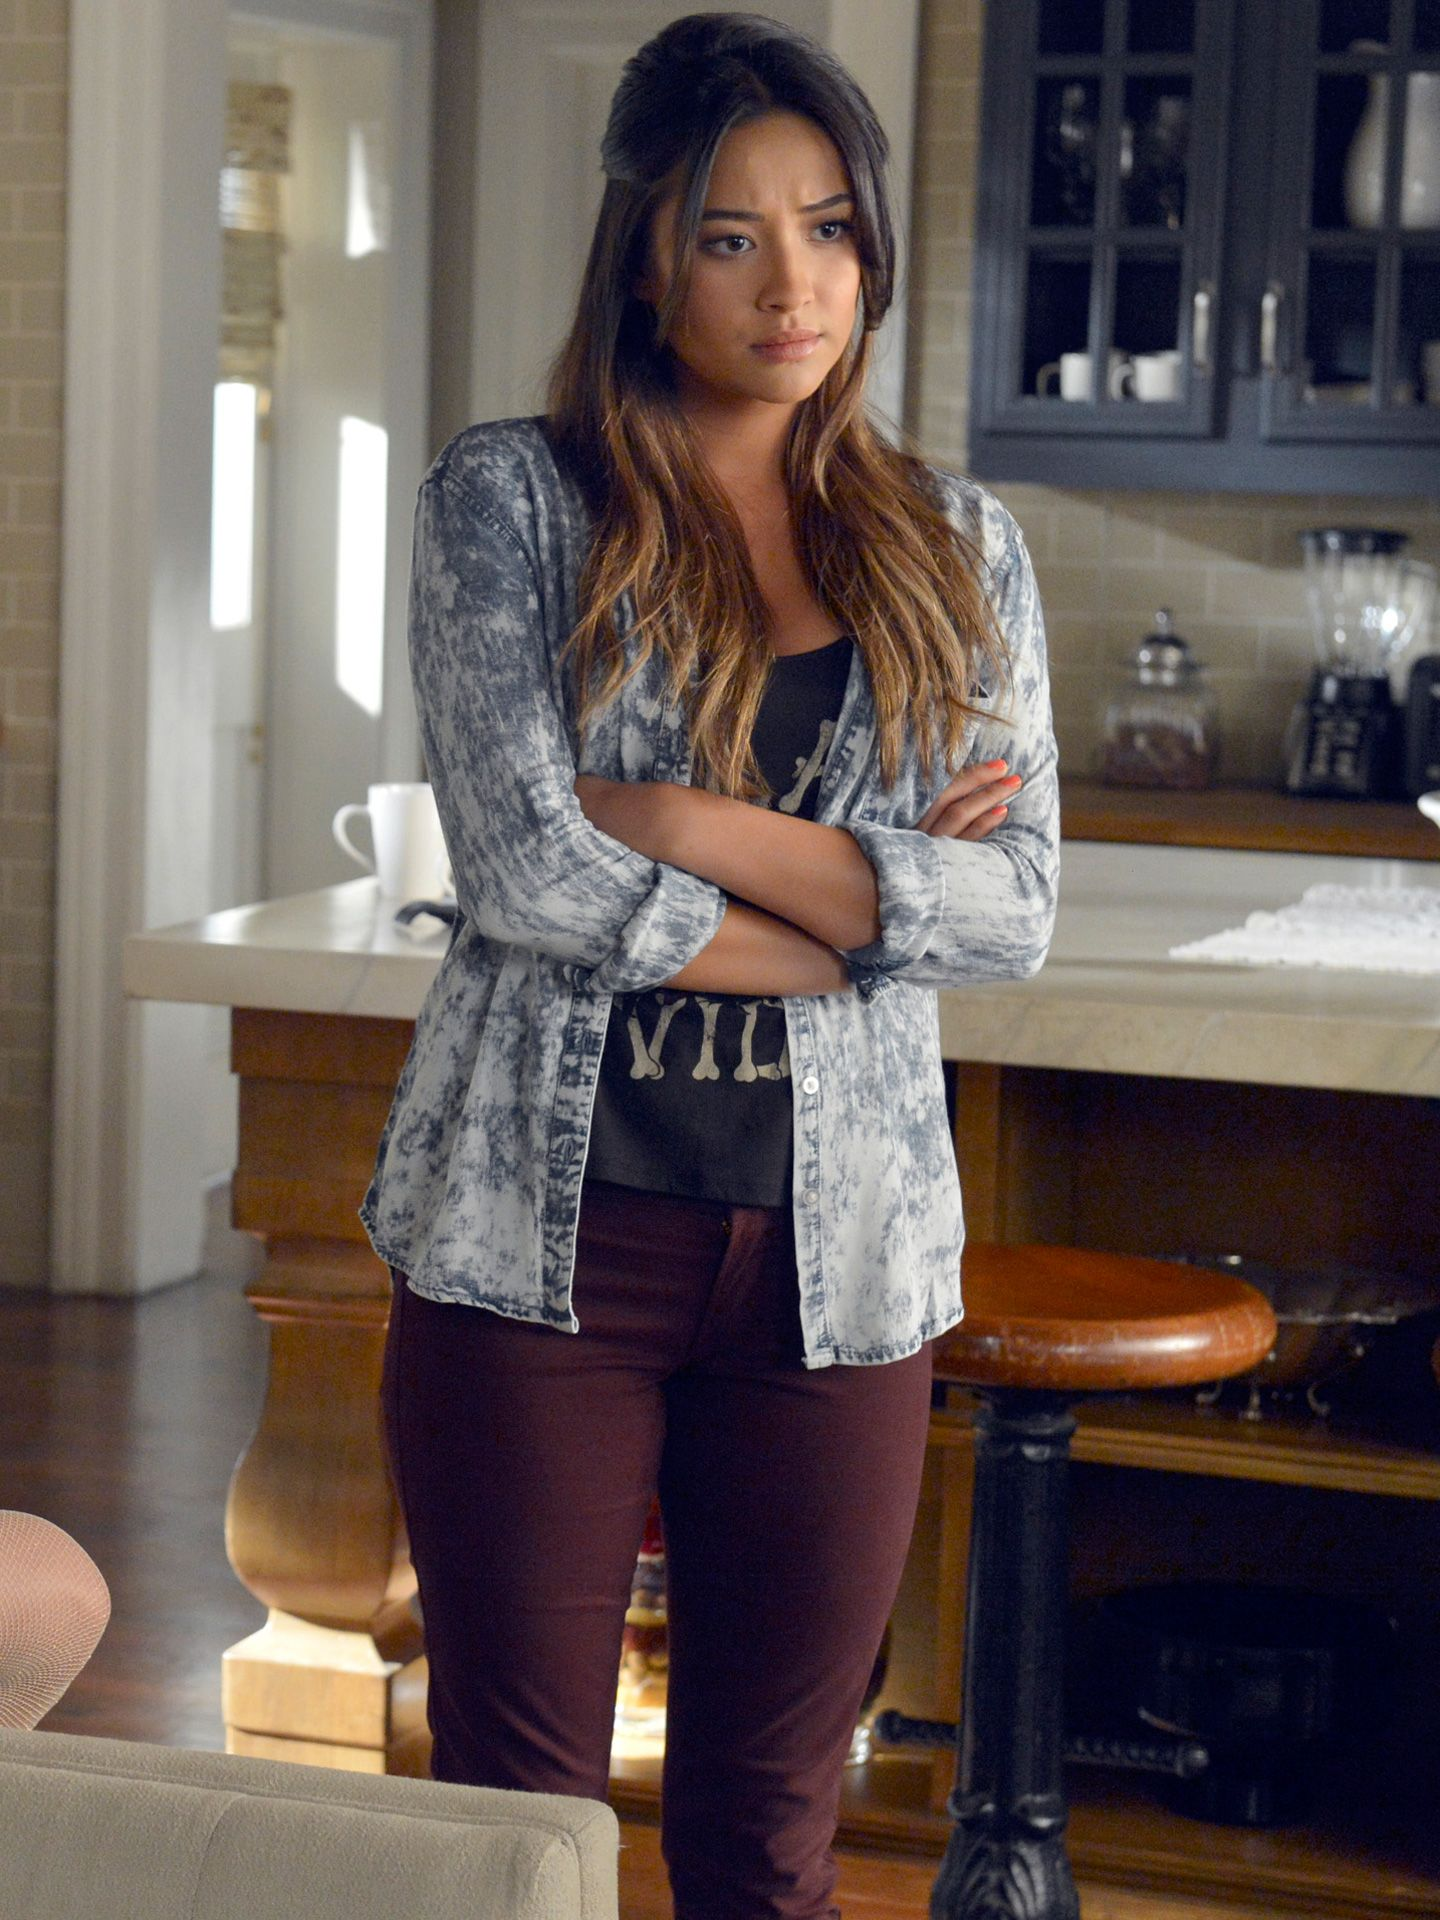 acf8a291548 75 Best Pretty Little Liars Outfits - Clothes from PLL